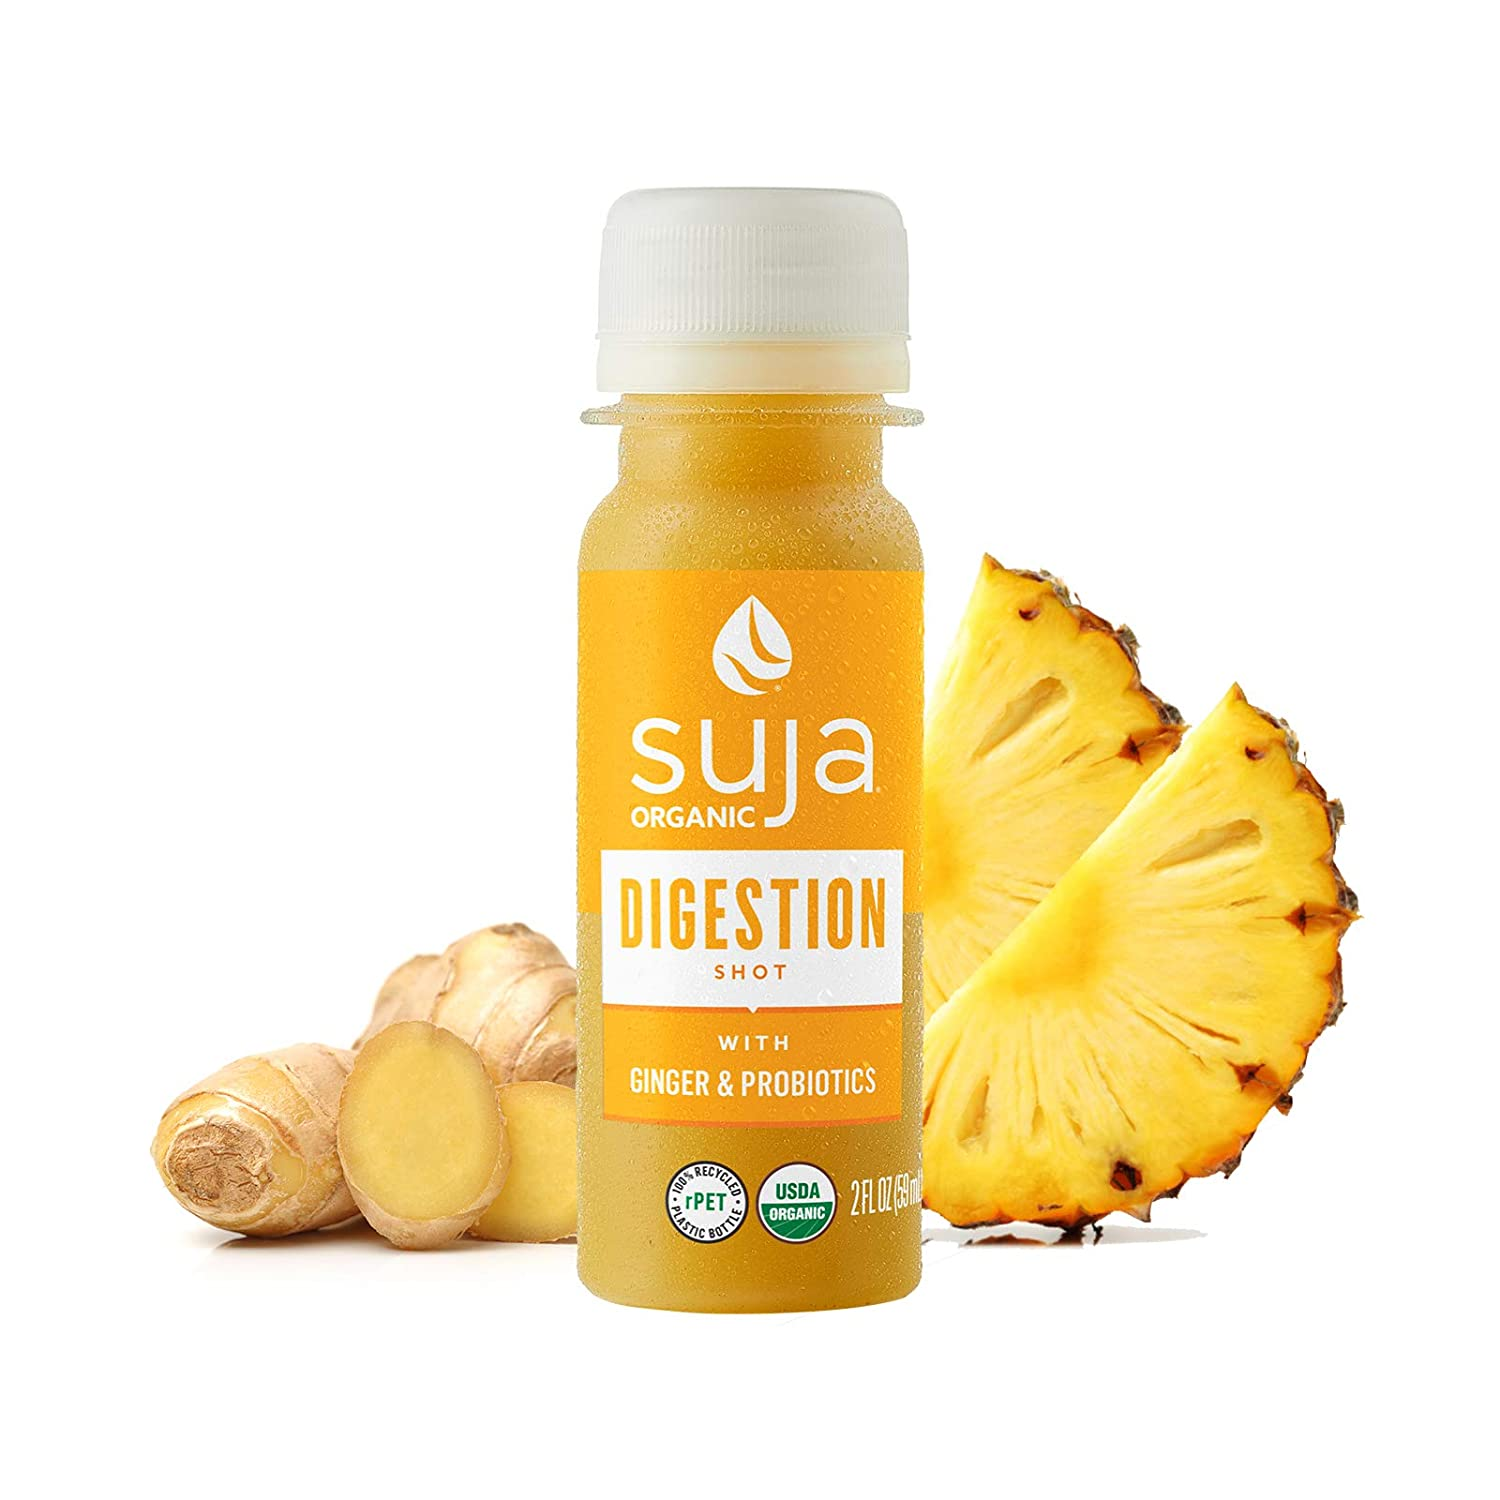 Suja Organic Digestion Shot (30 Pack) with Ginger, Apple Cider Vinegar, Ginseng and Probiotics | Support Immune + Digestive Health | Boost Gut Health | Fresh, Organic & Nutrient-Packed | Vegan Cold-Pressed Wellness Shot